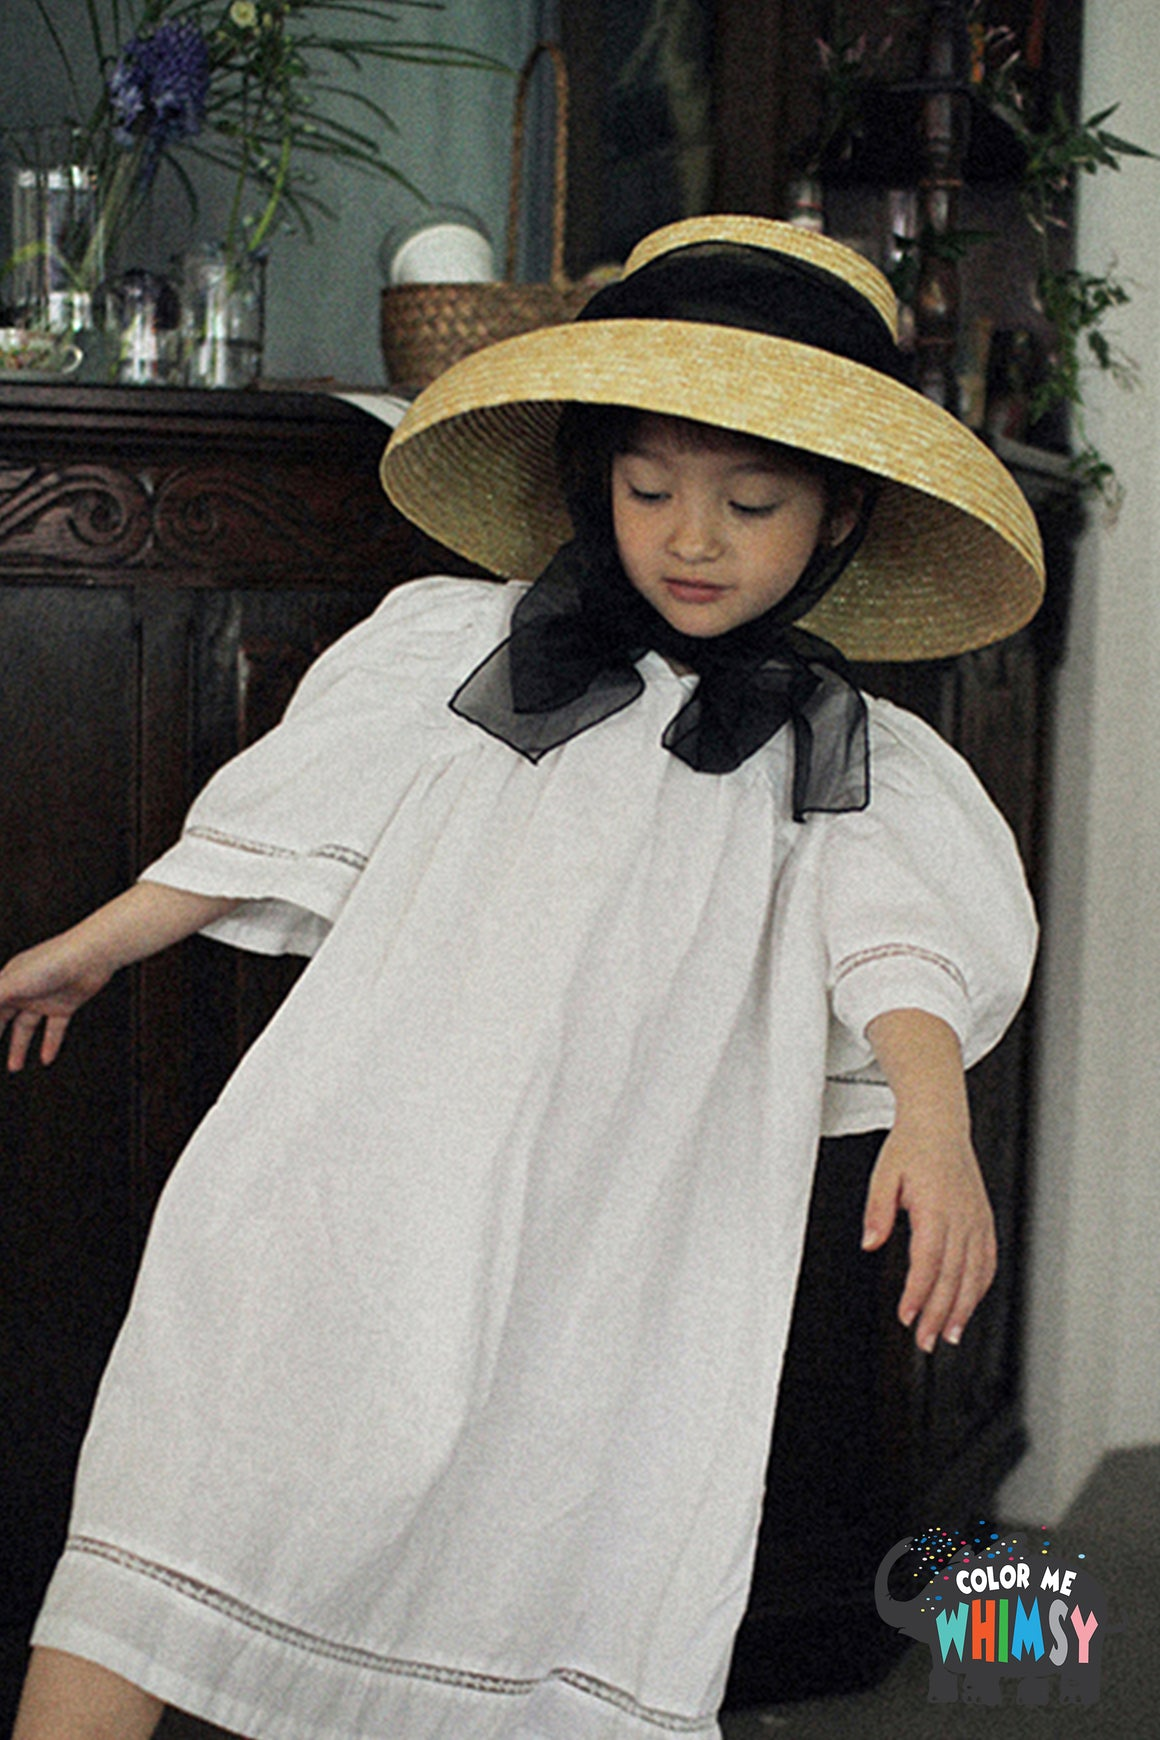 SCON Adella Dress at Color Me WHIMSY Hip Kid's Fashion Ethically Made in South Korea